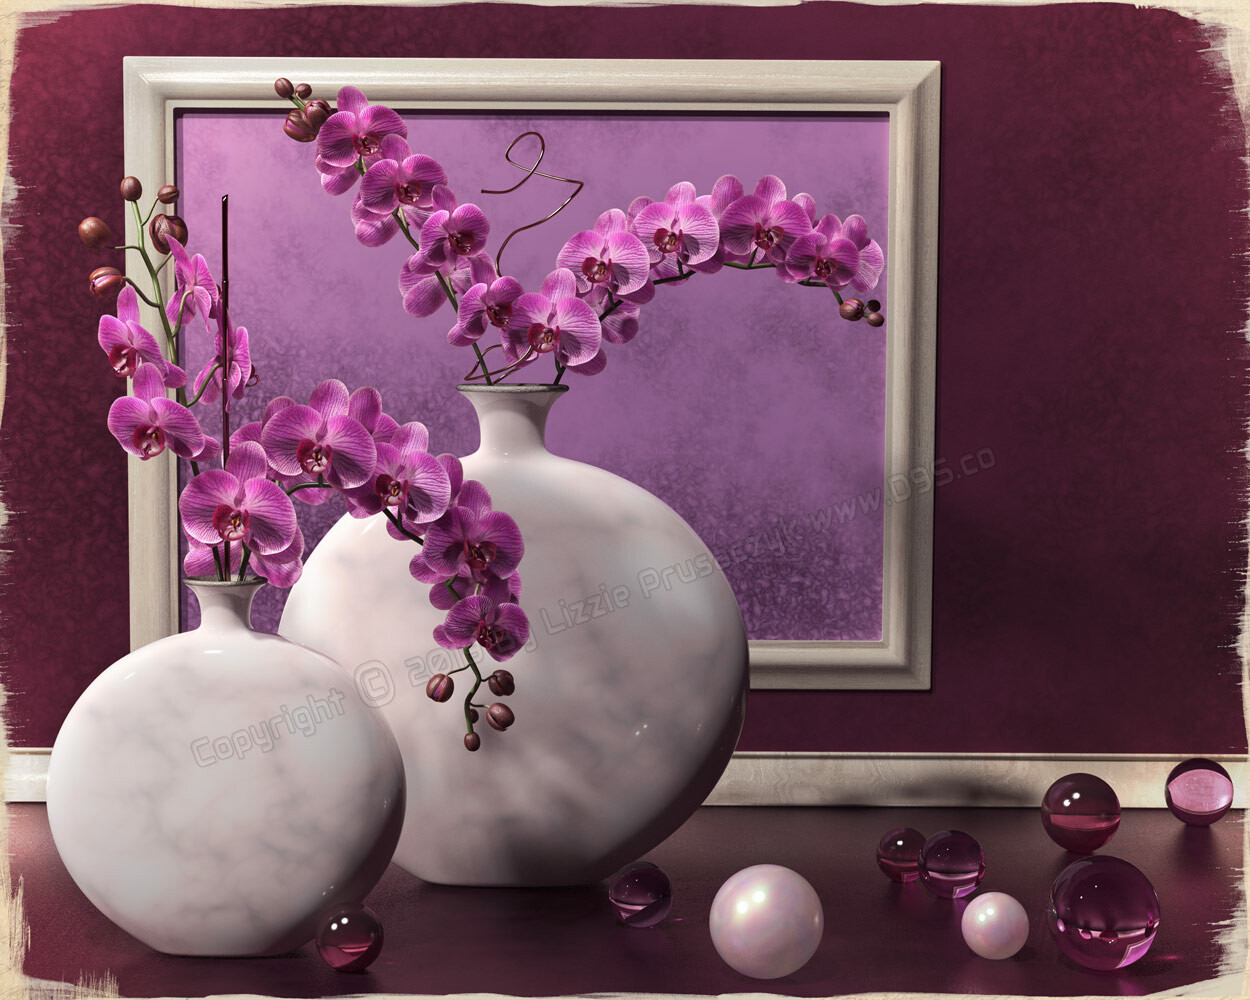 A zen-like configuration of orchids in fuchsia and cream tones.